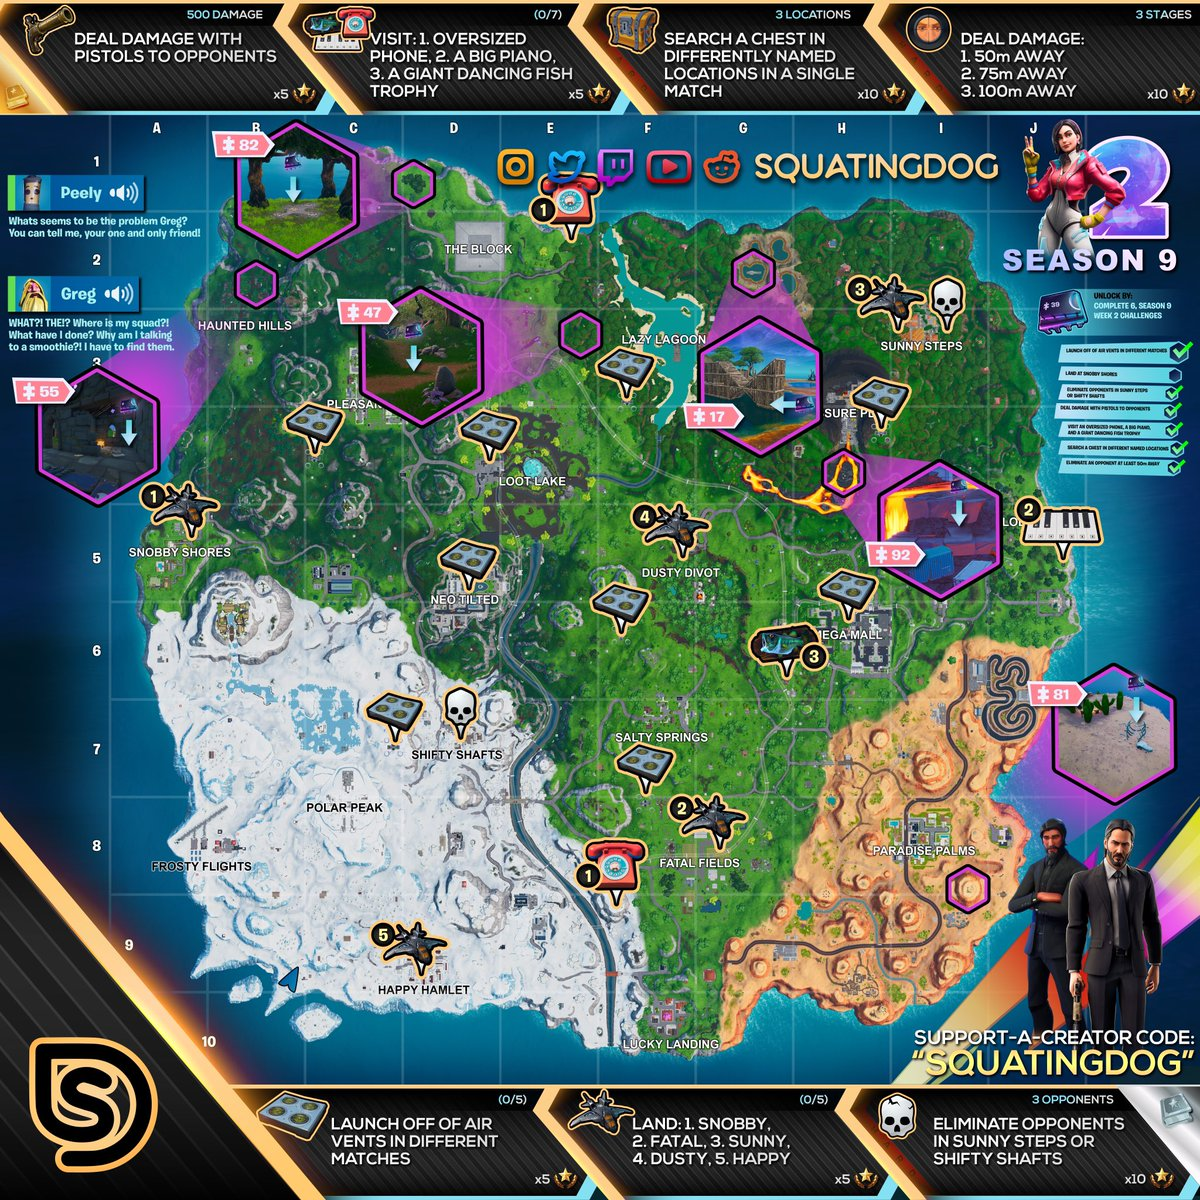 Squatingdog On Twitter Retweet Tag A Friend Who Needs The Season